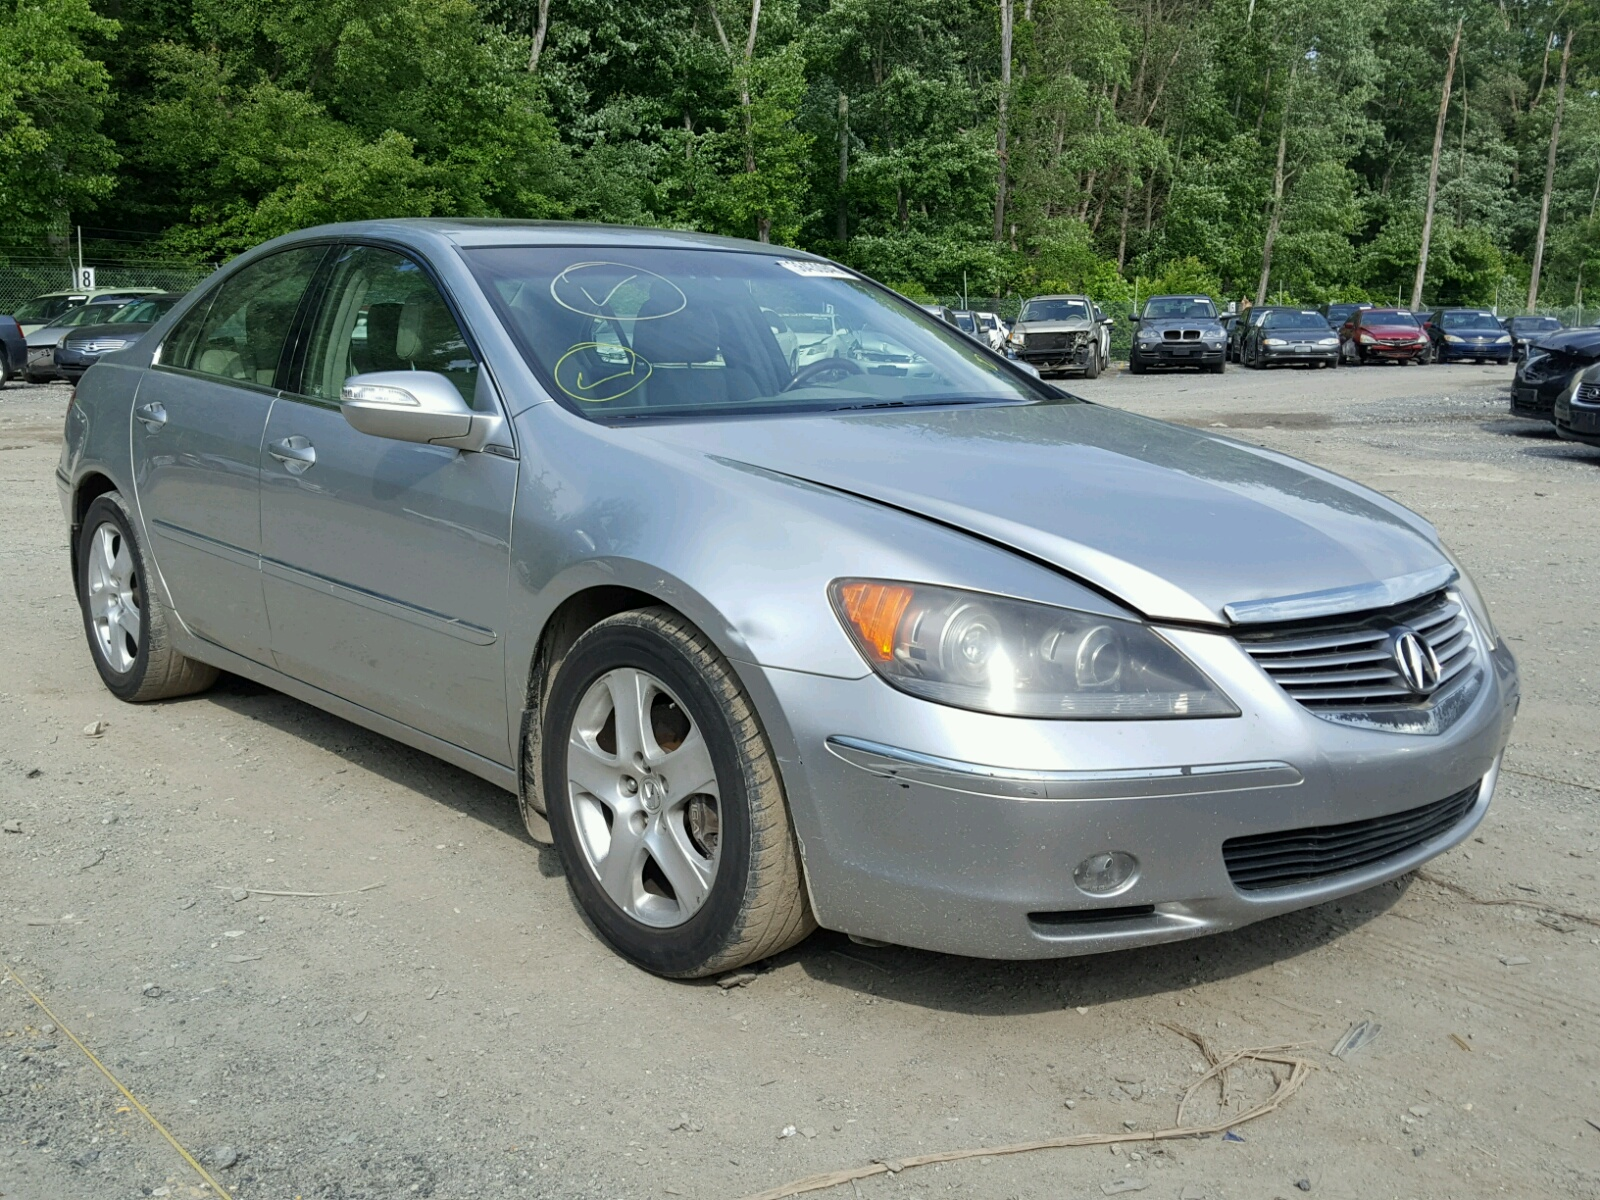 gray of for sale lot cert acura carfinder in baltimore md rl auto online salvage auctions on en copart left damage view